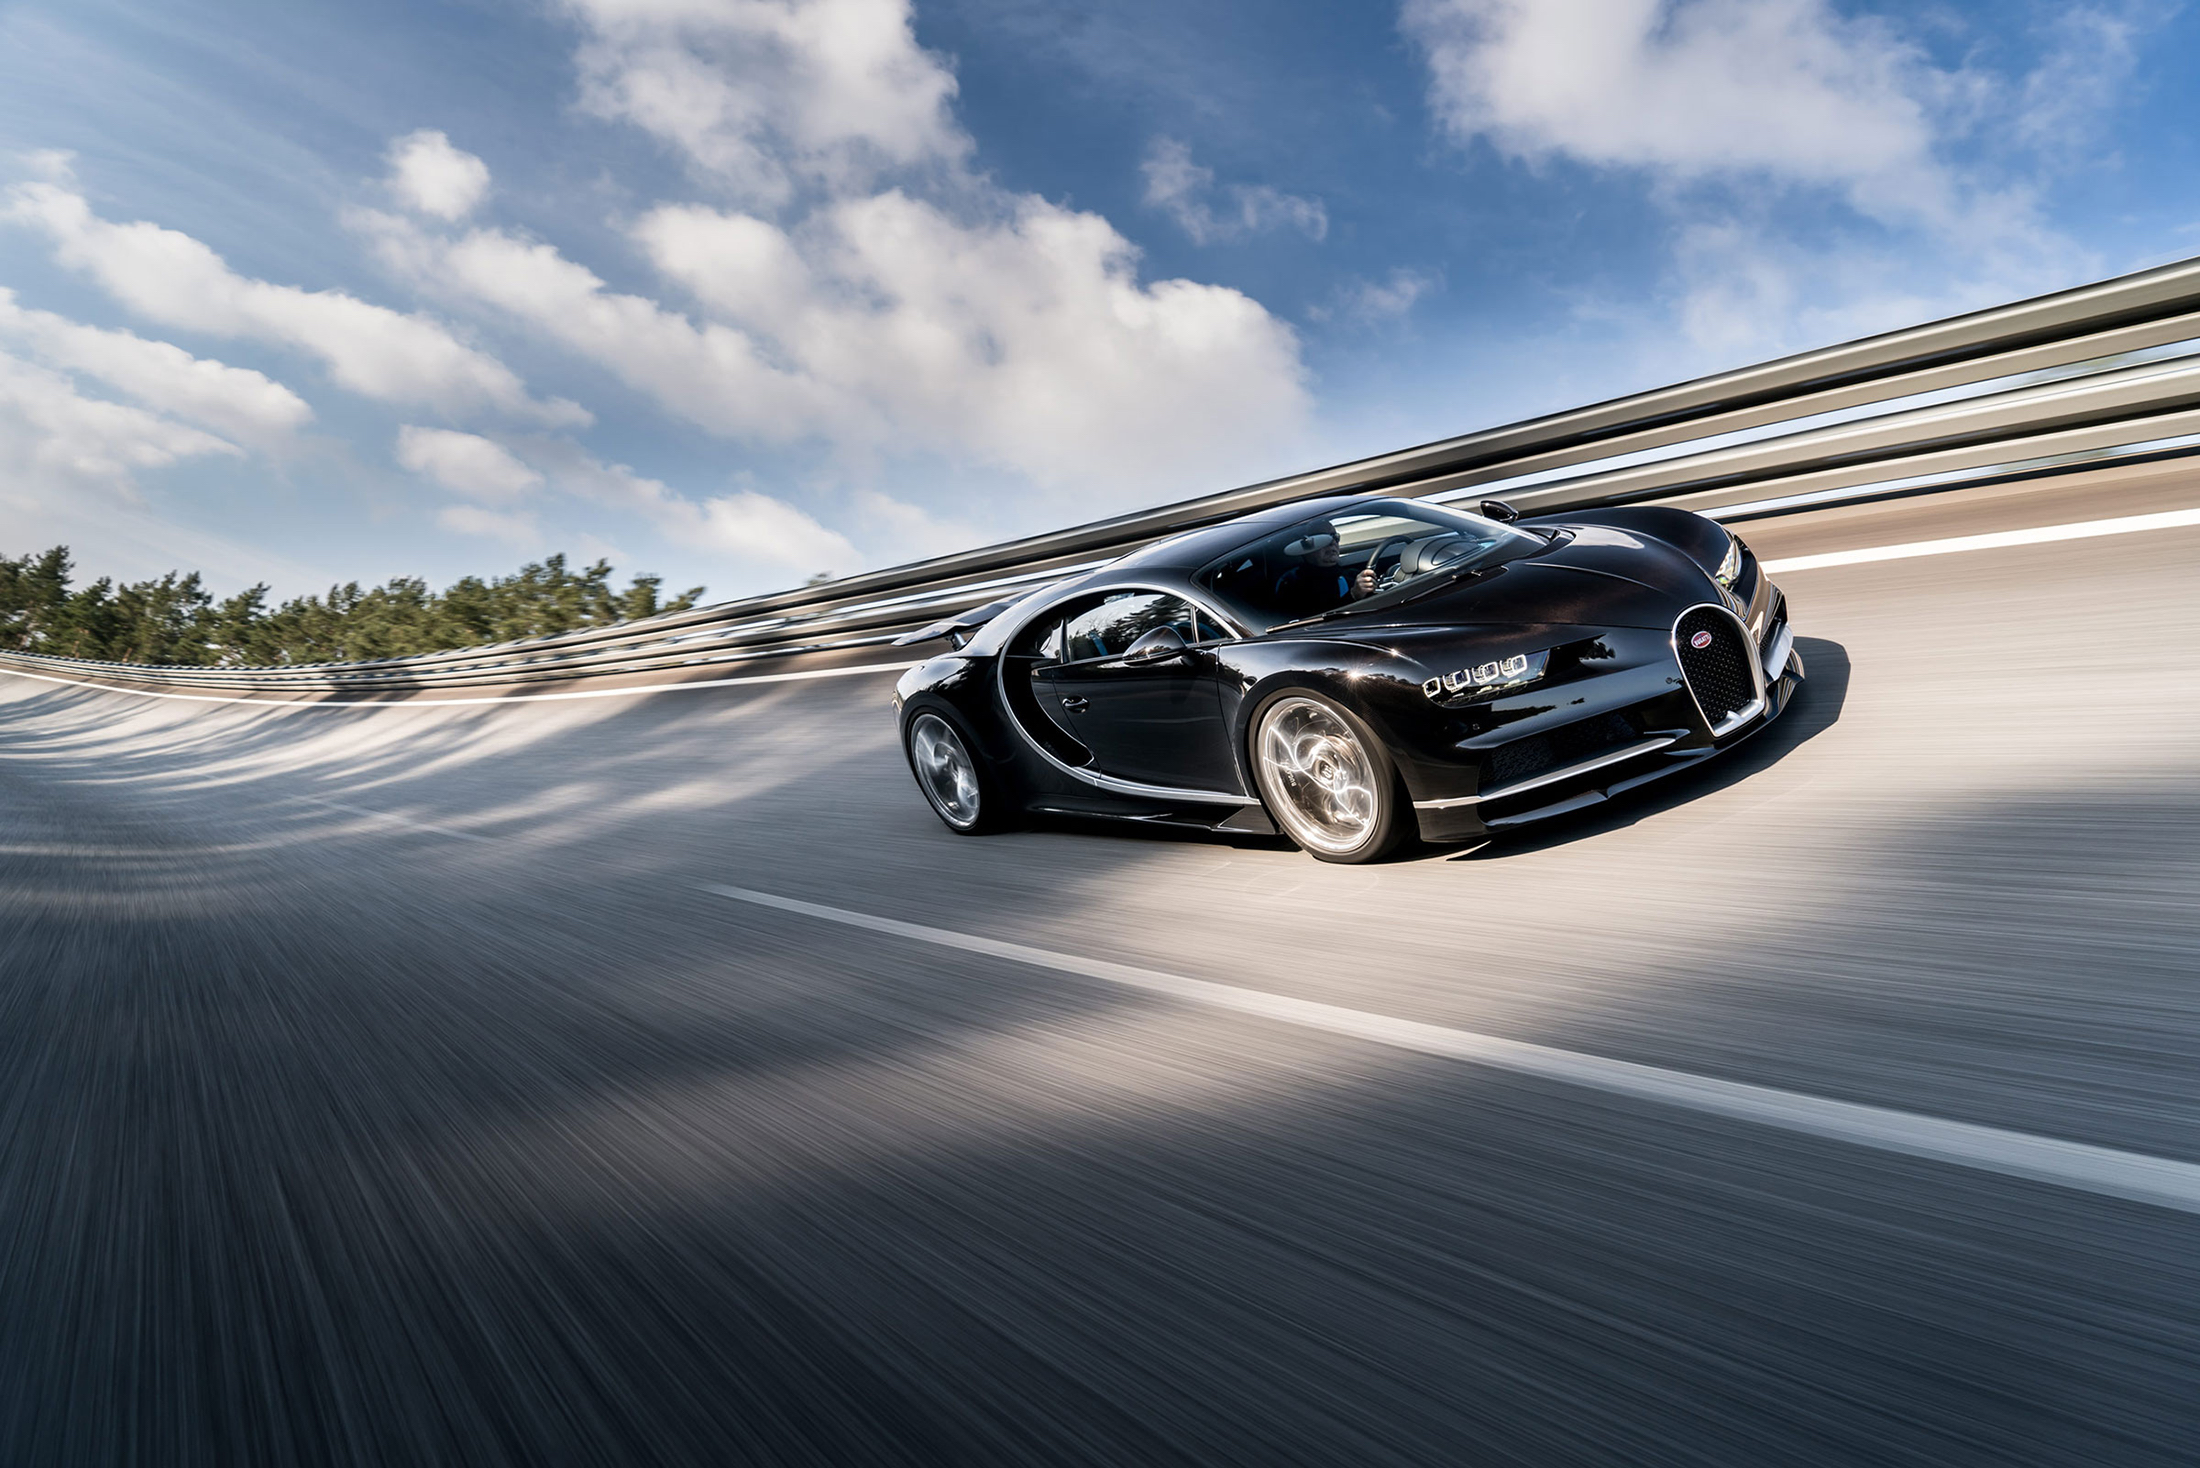 The new Bugatti Chiron. (Photo: Courtesy Bugatti)